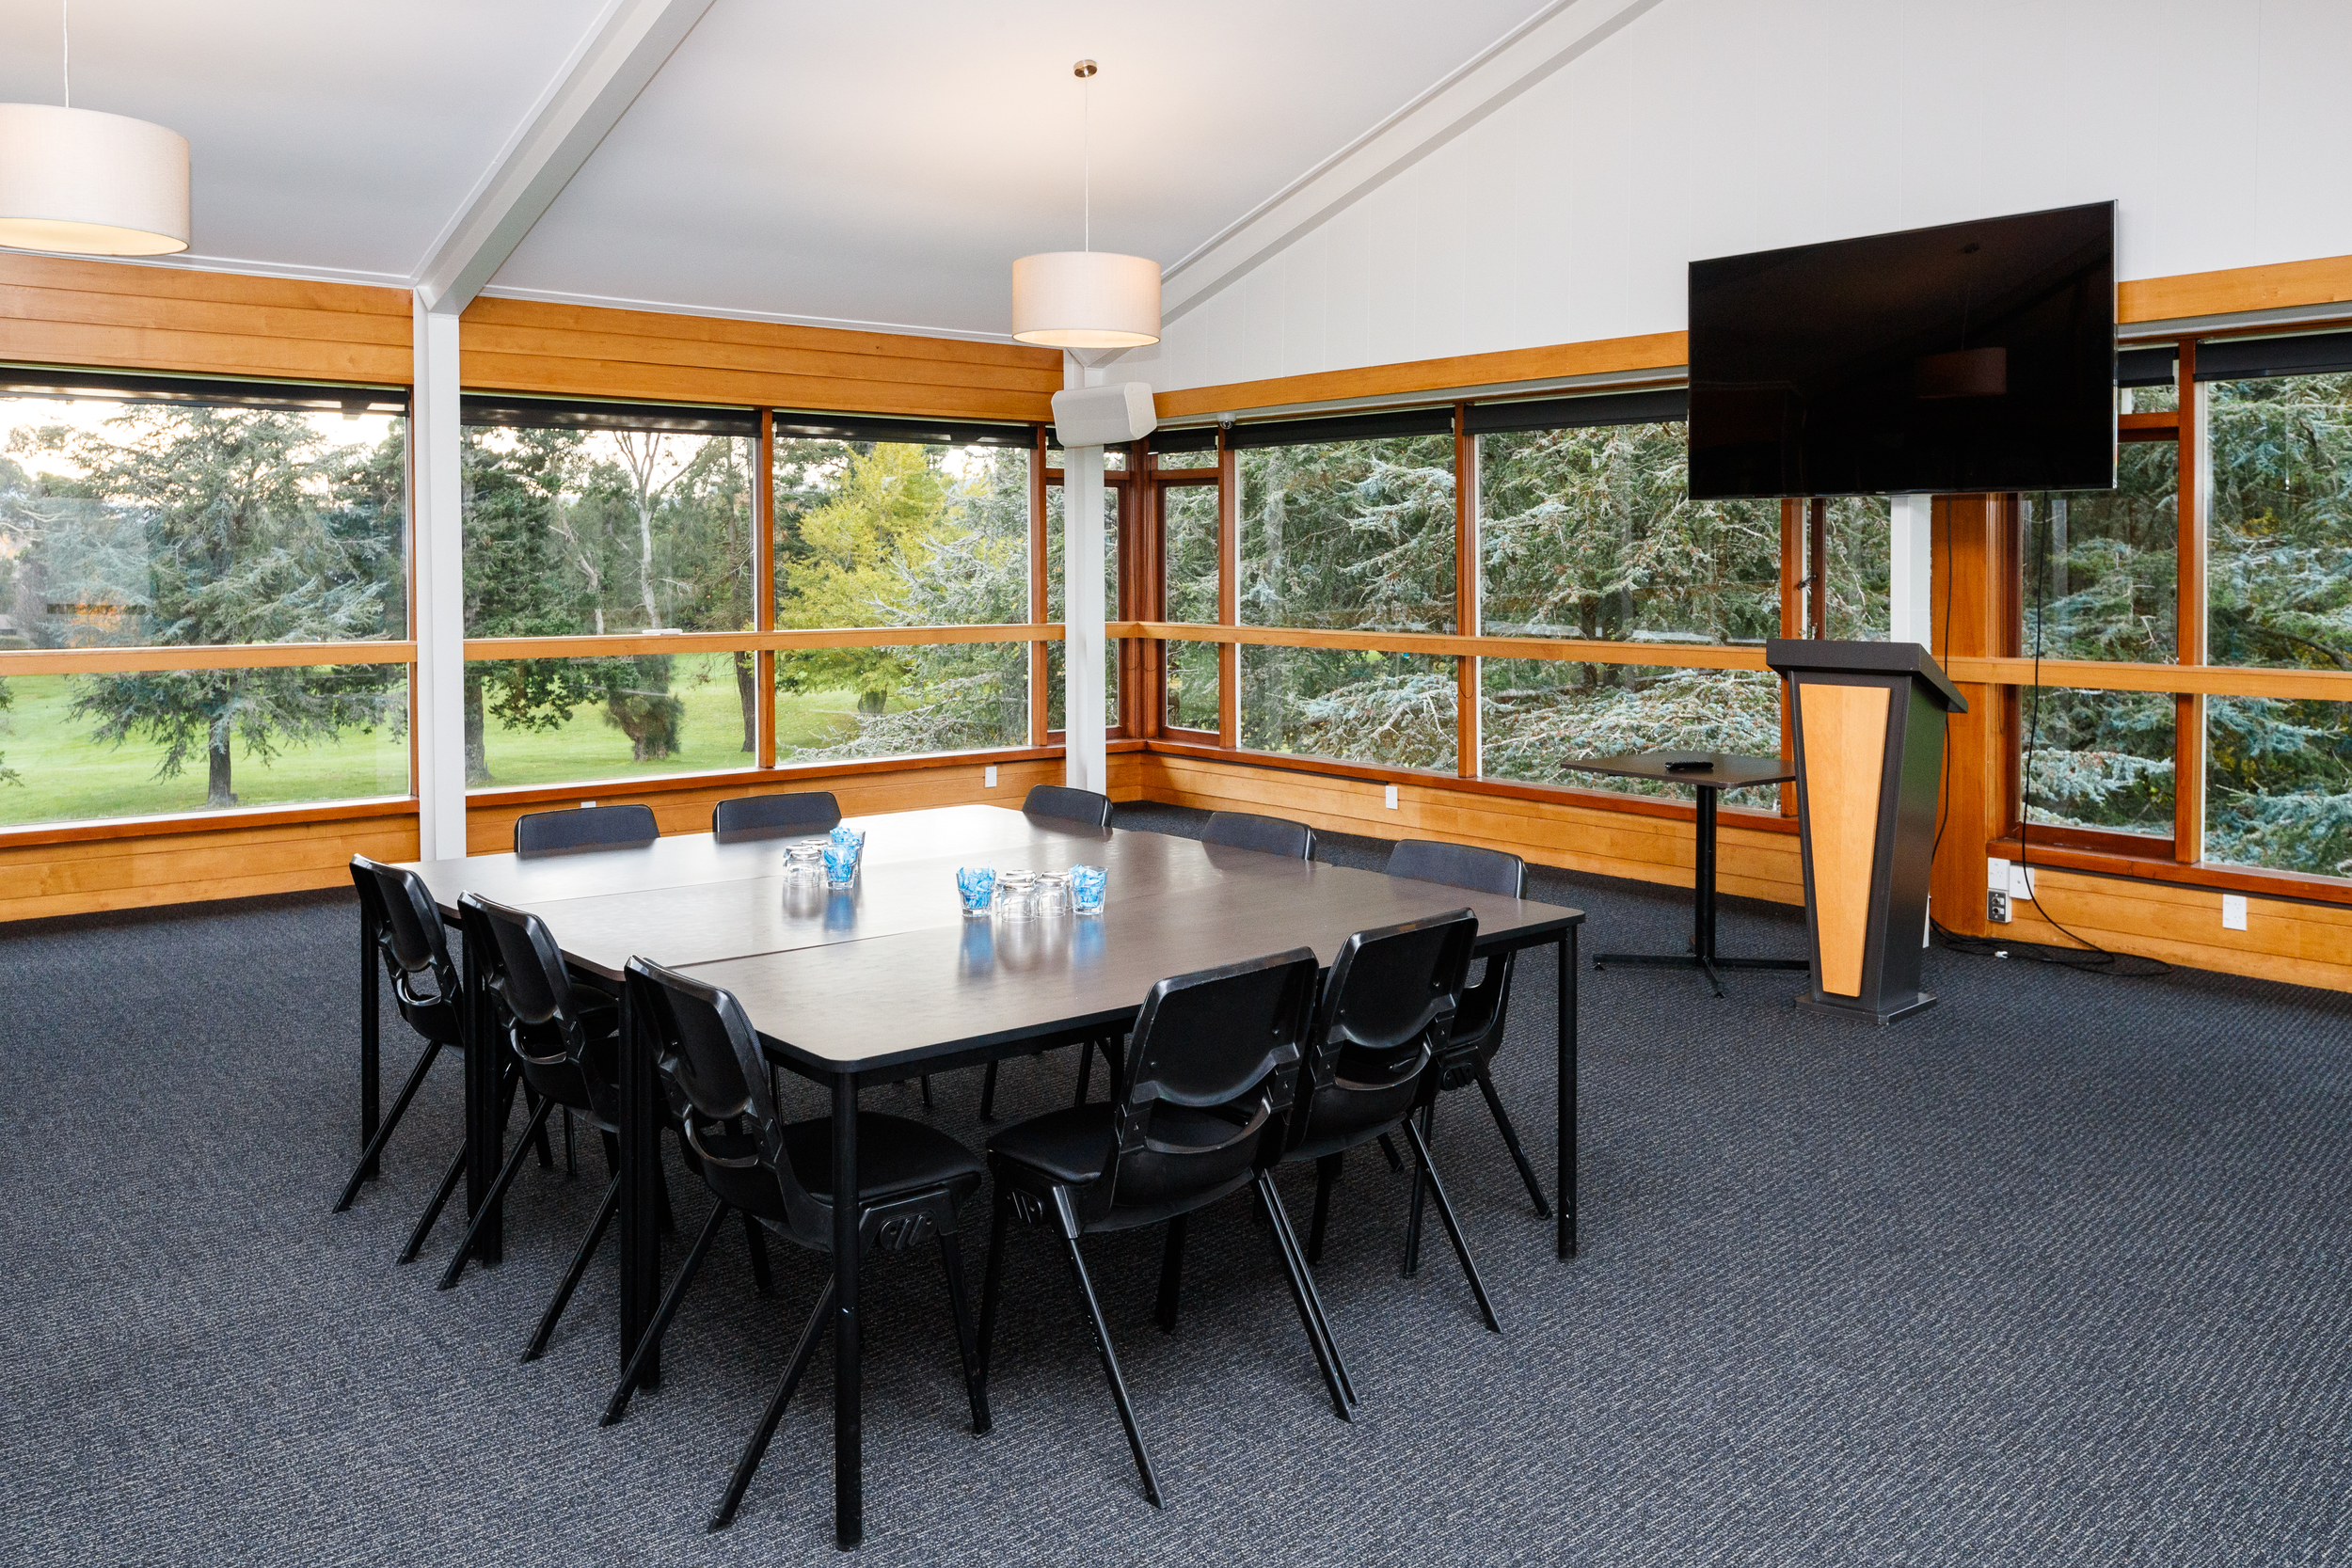 ANZ Lounge - Boardroom style